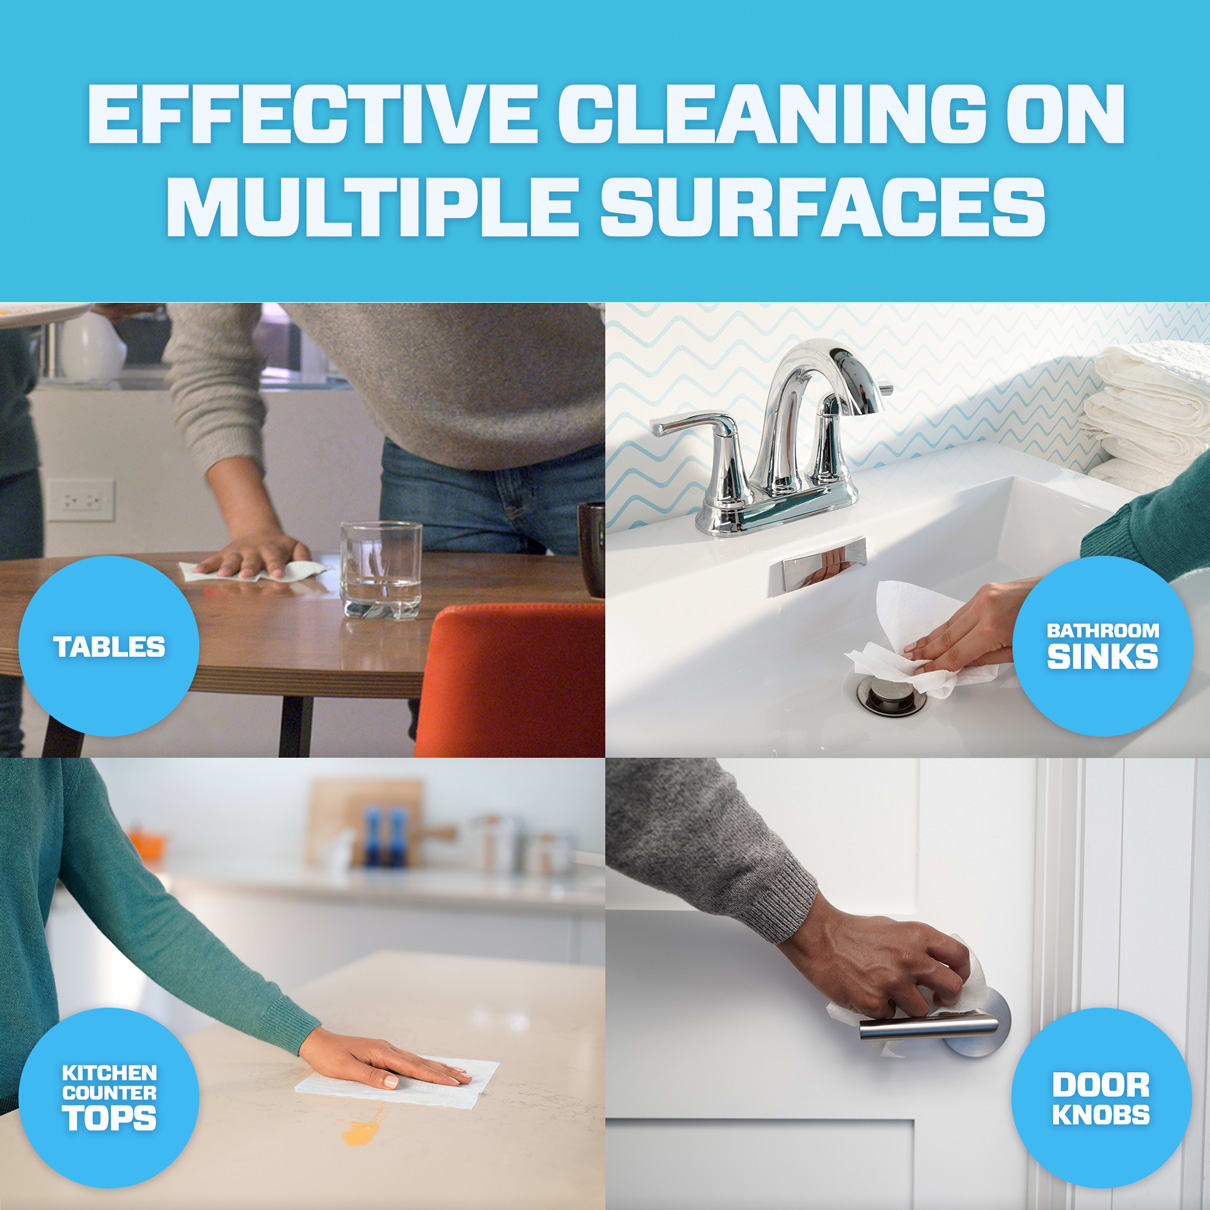 Mr. Clean cleans effectively on multiple surfaces